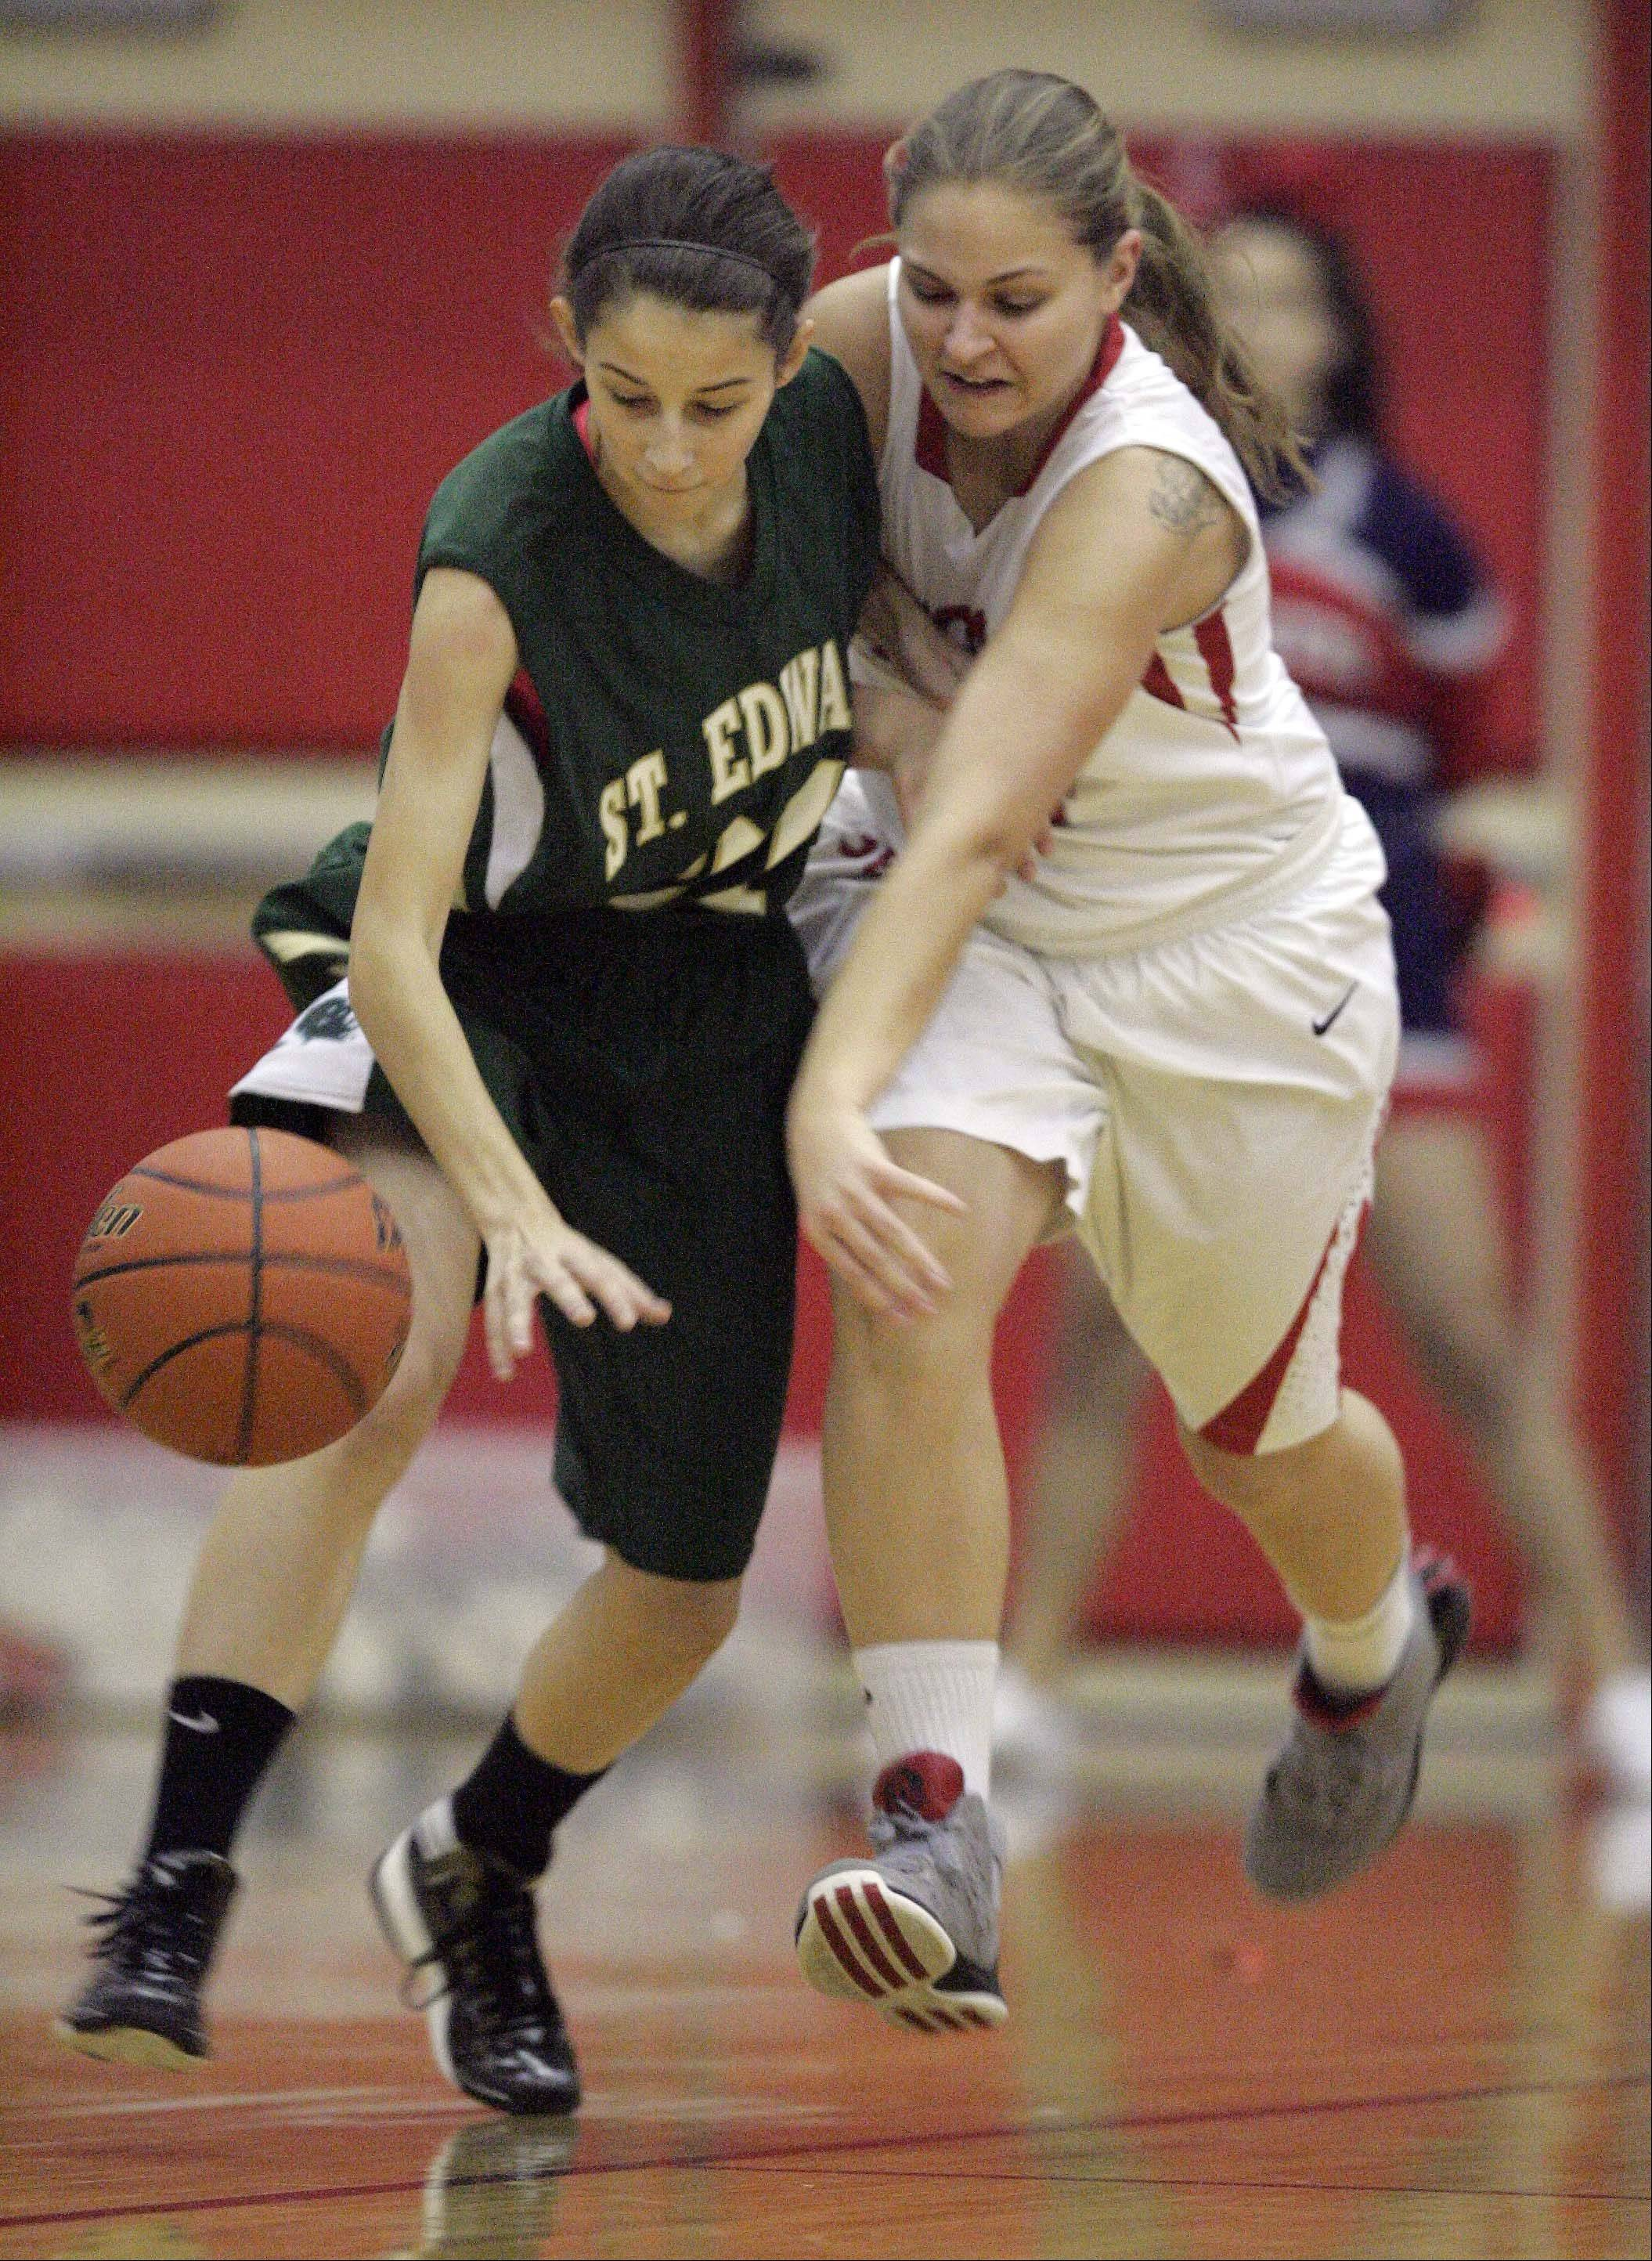 St. Edward's Chelsea Gnan, 31, puts the pressure on 34 South Elgin's Amanda Behles, 34, during girls basketball Saturday January 5, 2013